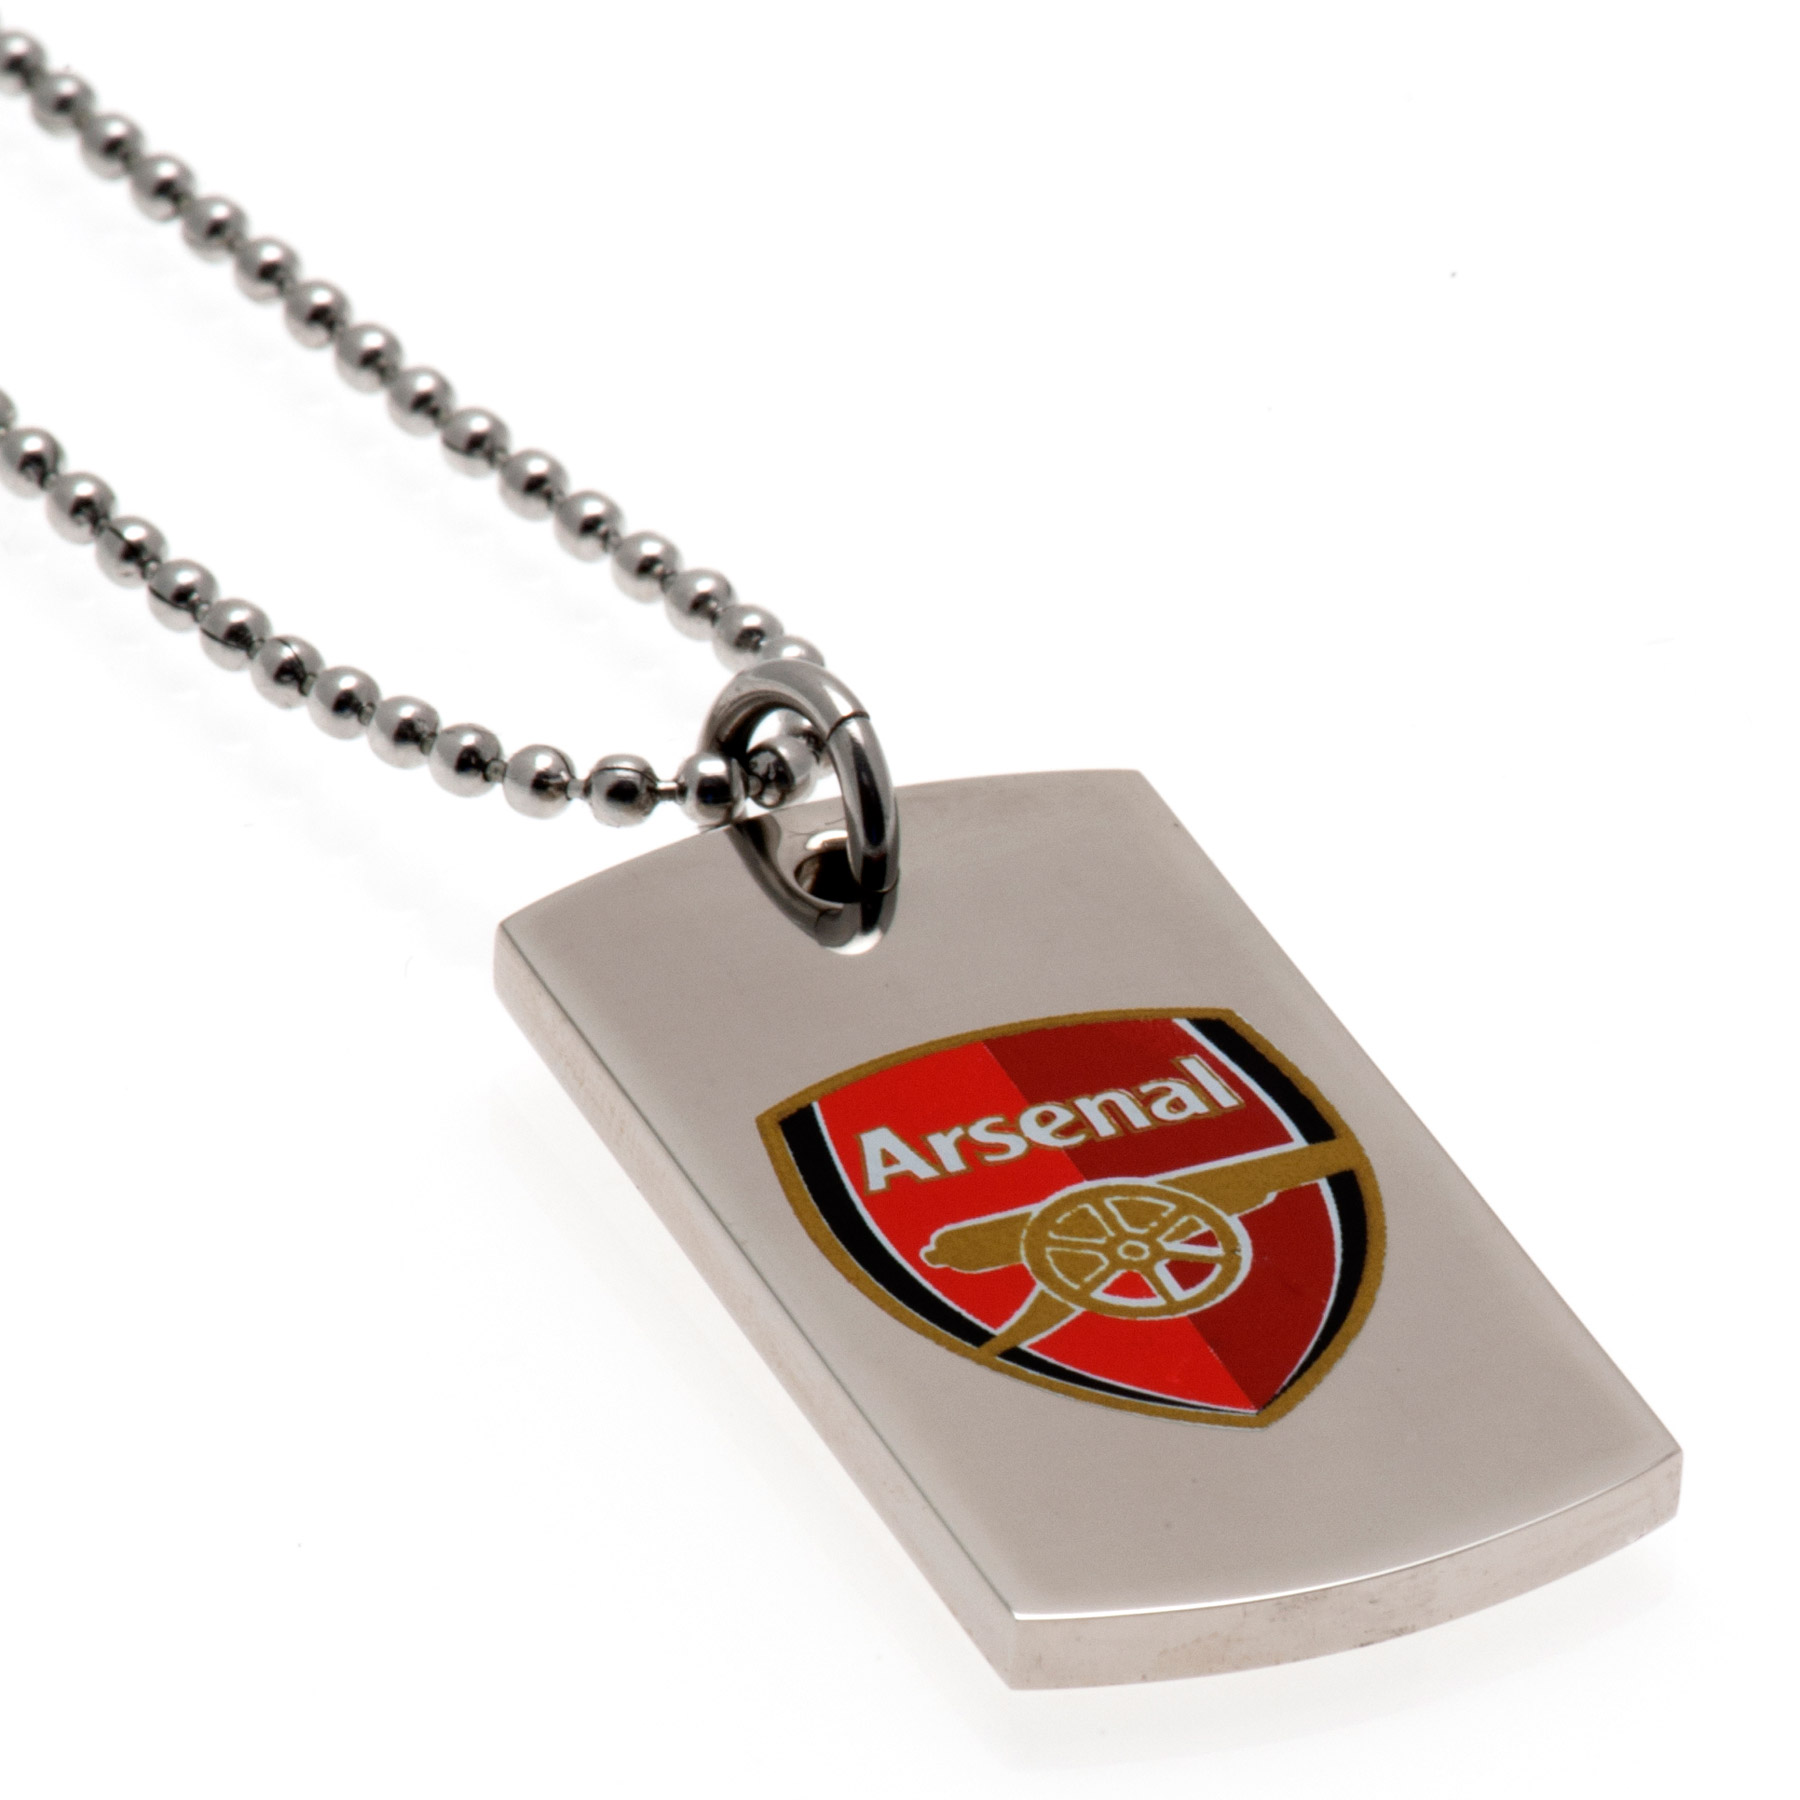 Image of Arsenal Colour Crest Dog Tag & Chain - Stainless Steel, N/A